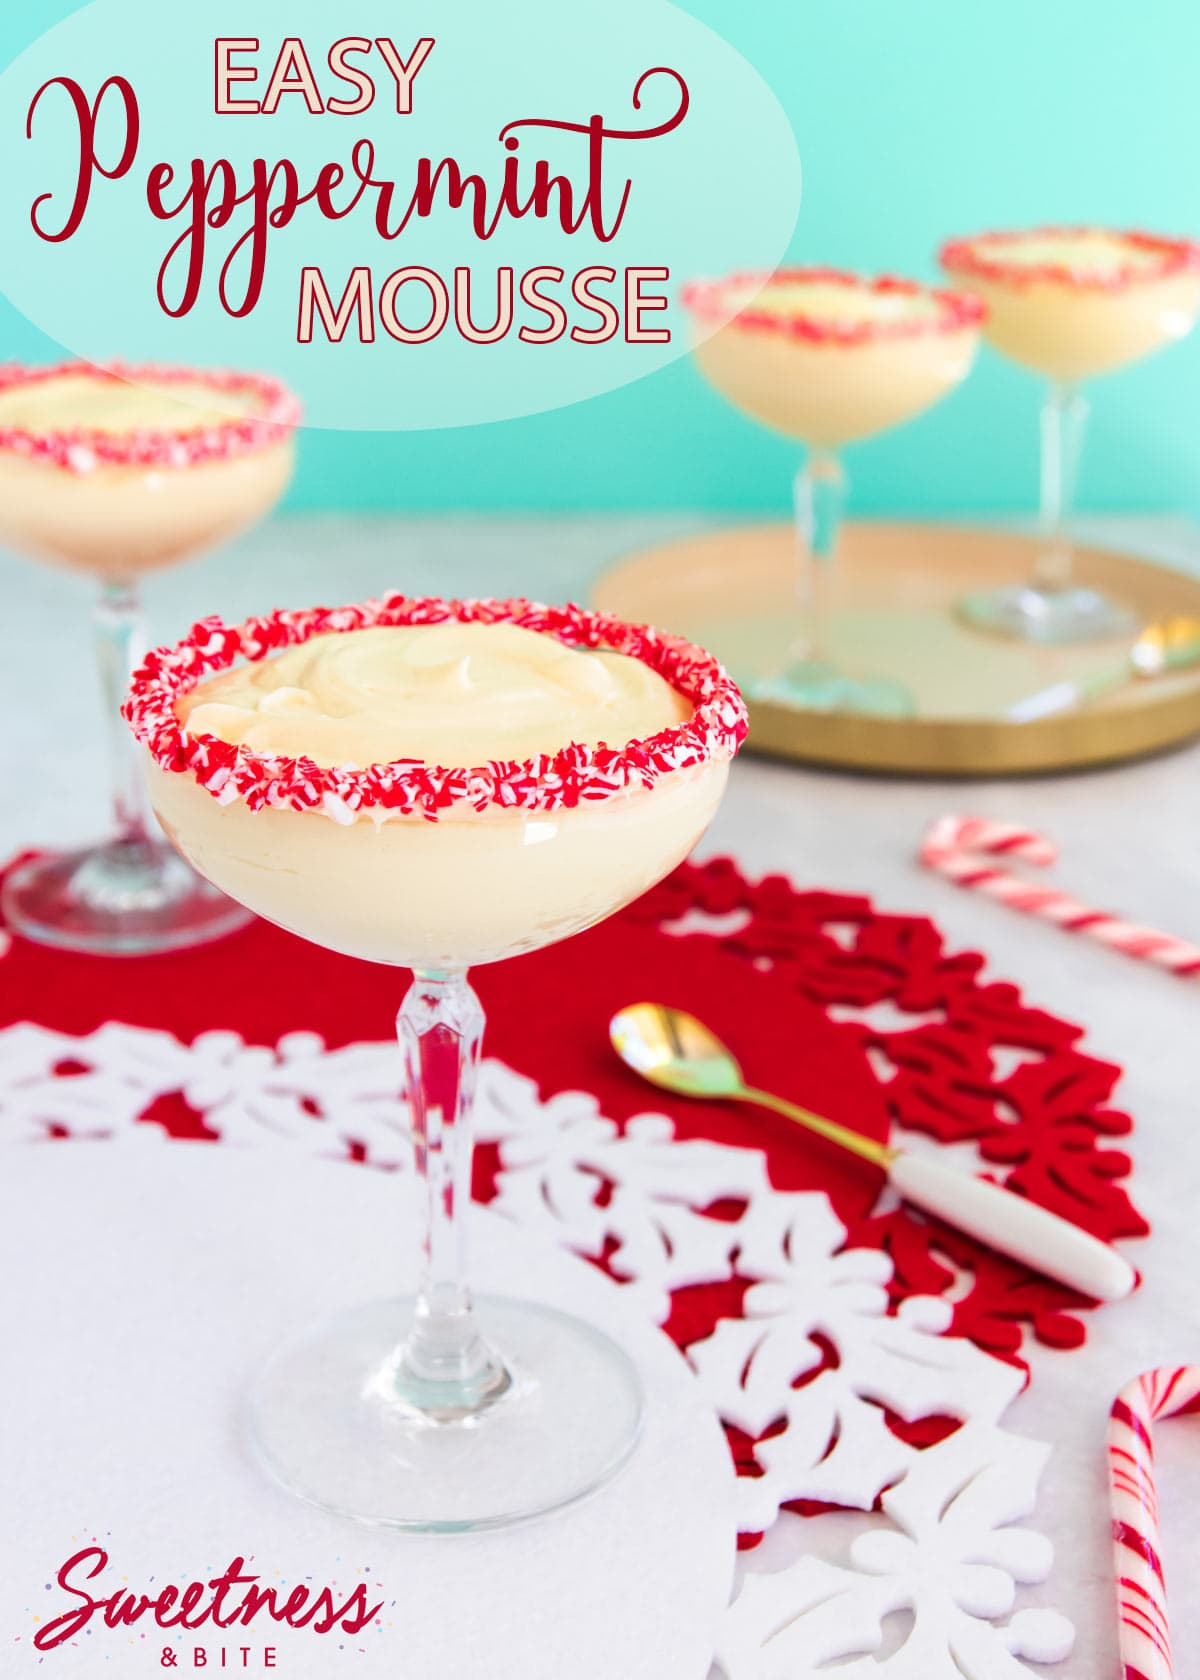 Easy peppermint mousse served in a cocktail glass, with crushed candy canes around the rim of the glass.